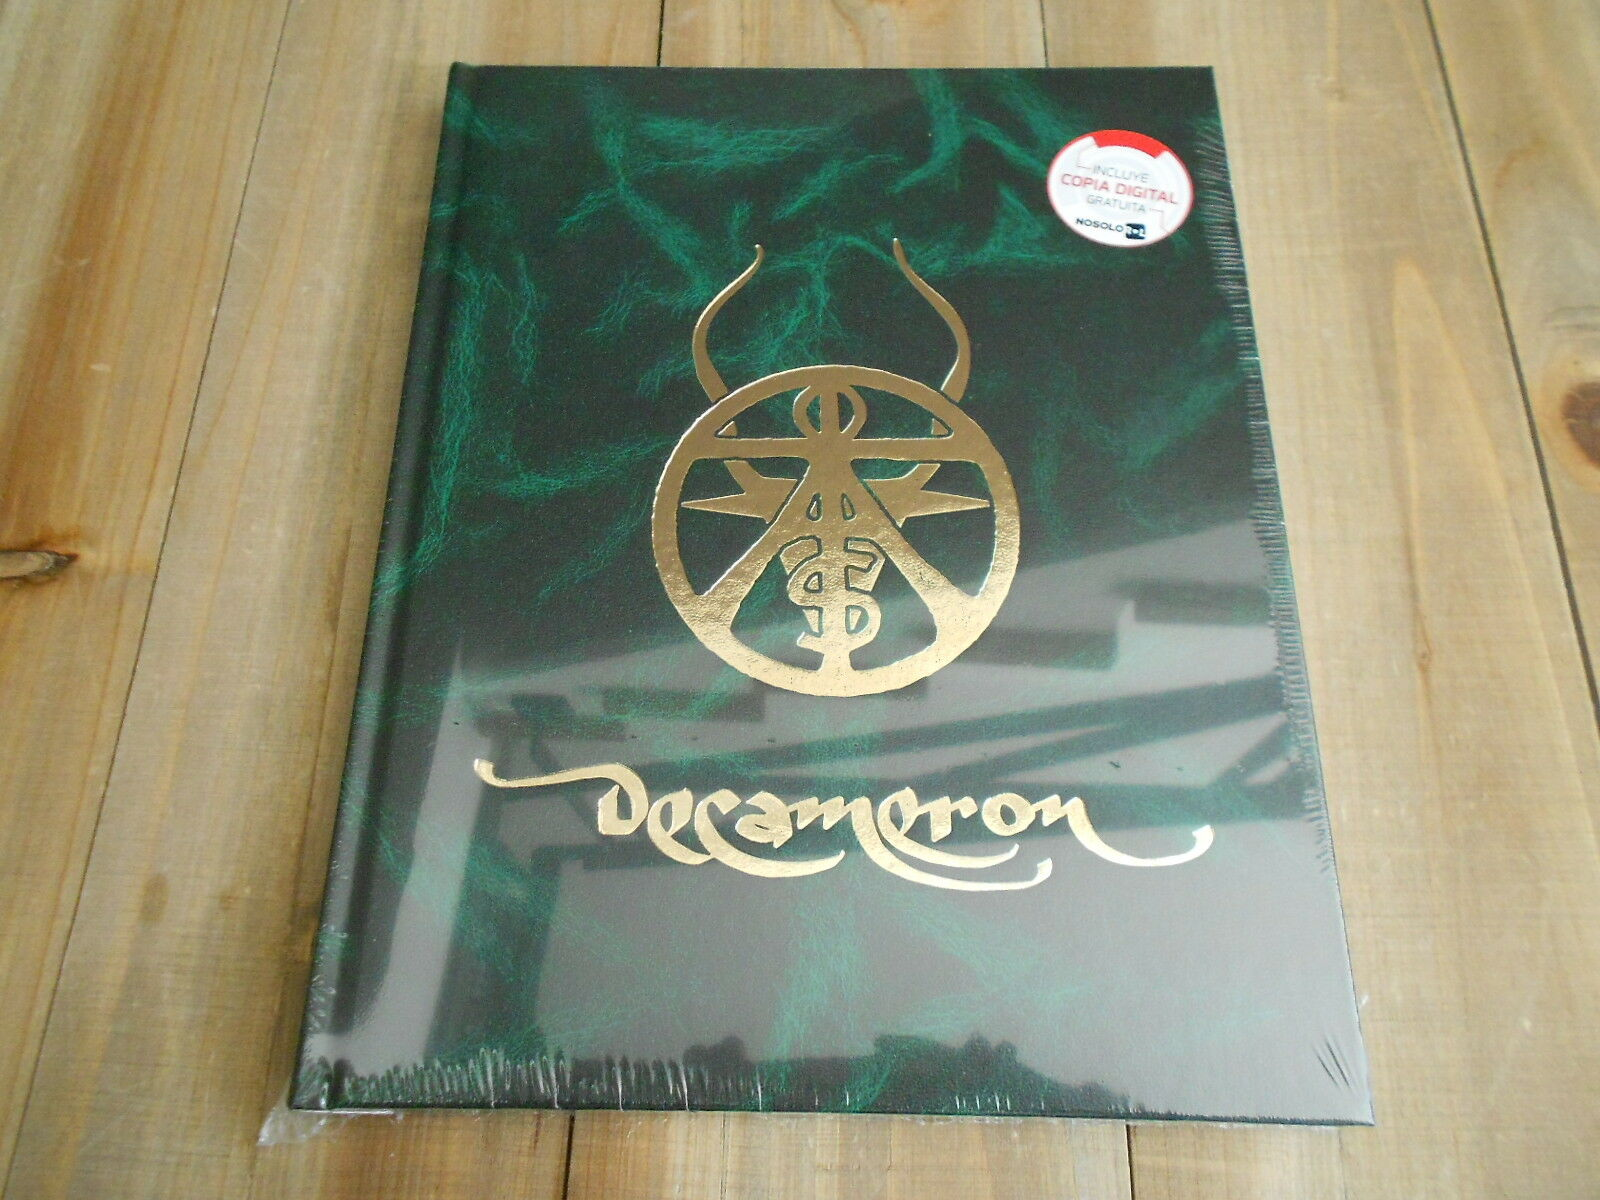 Coven - Decameron Deluxe - Set Role Play - Nosolgoldl - Sealed